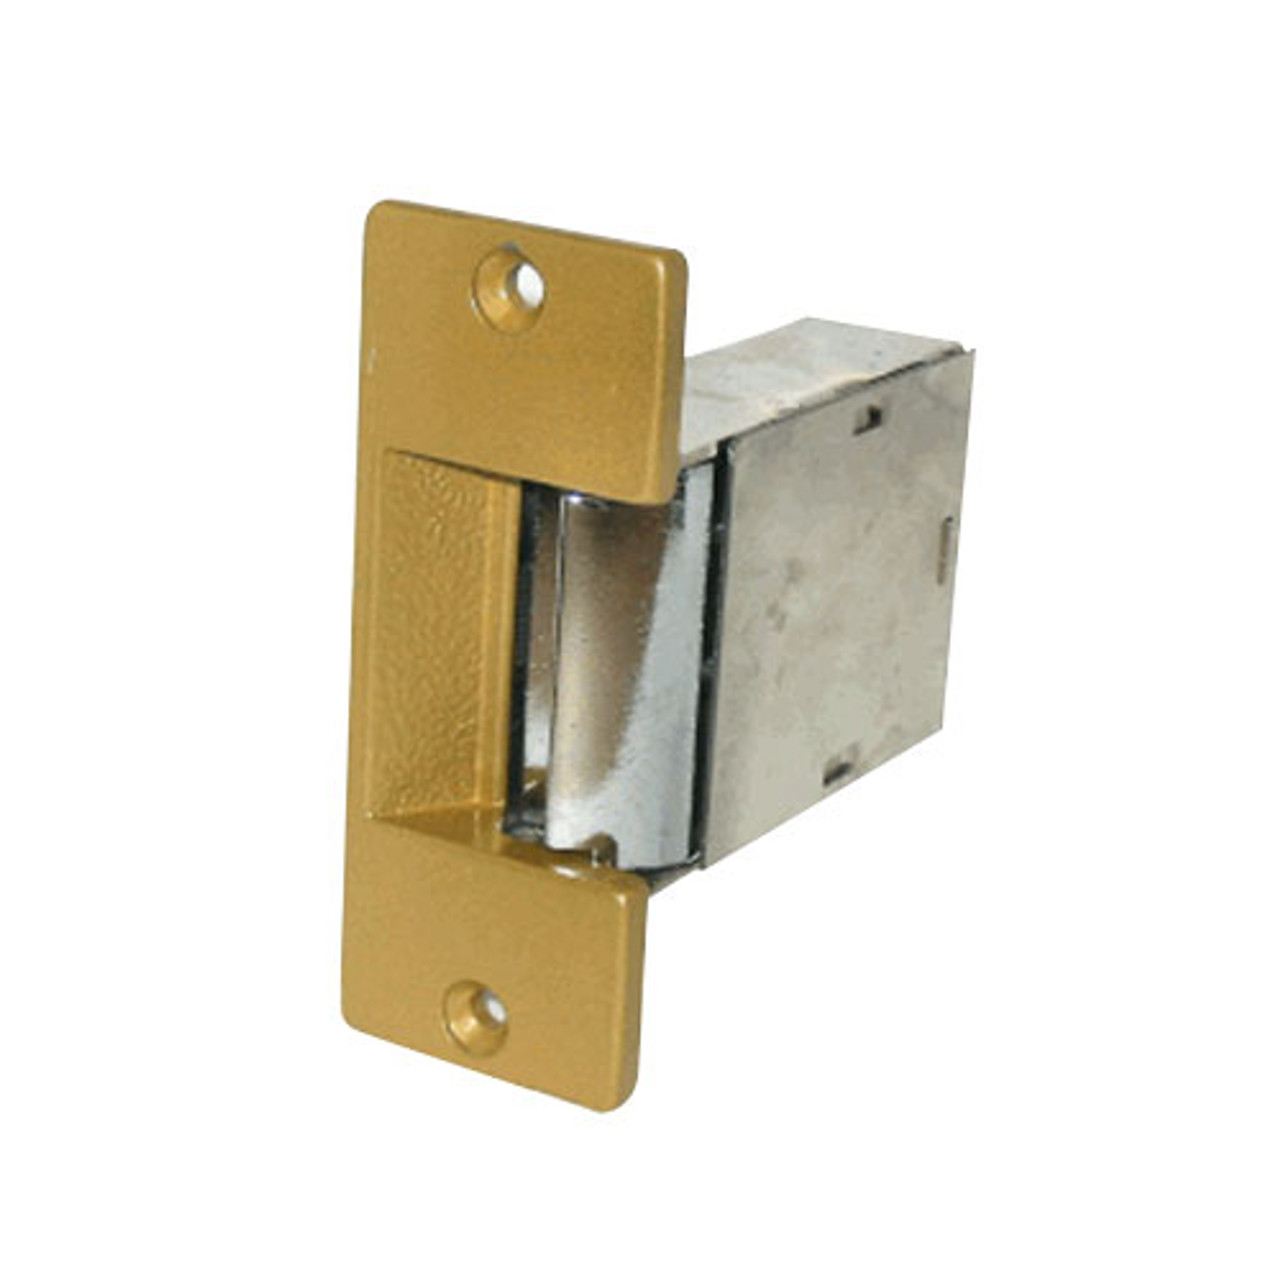 S005-RS-24DC Trine Light Commercial Fail Safe Electric Strikes in Brass Powder Finish